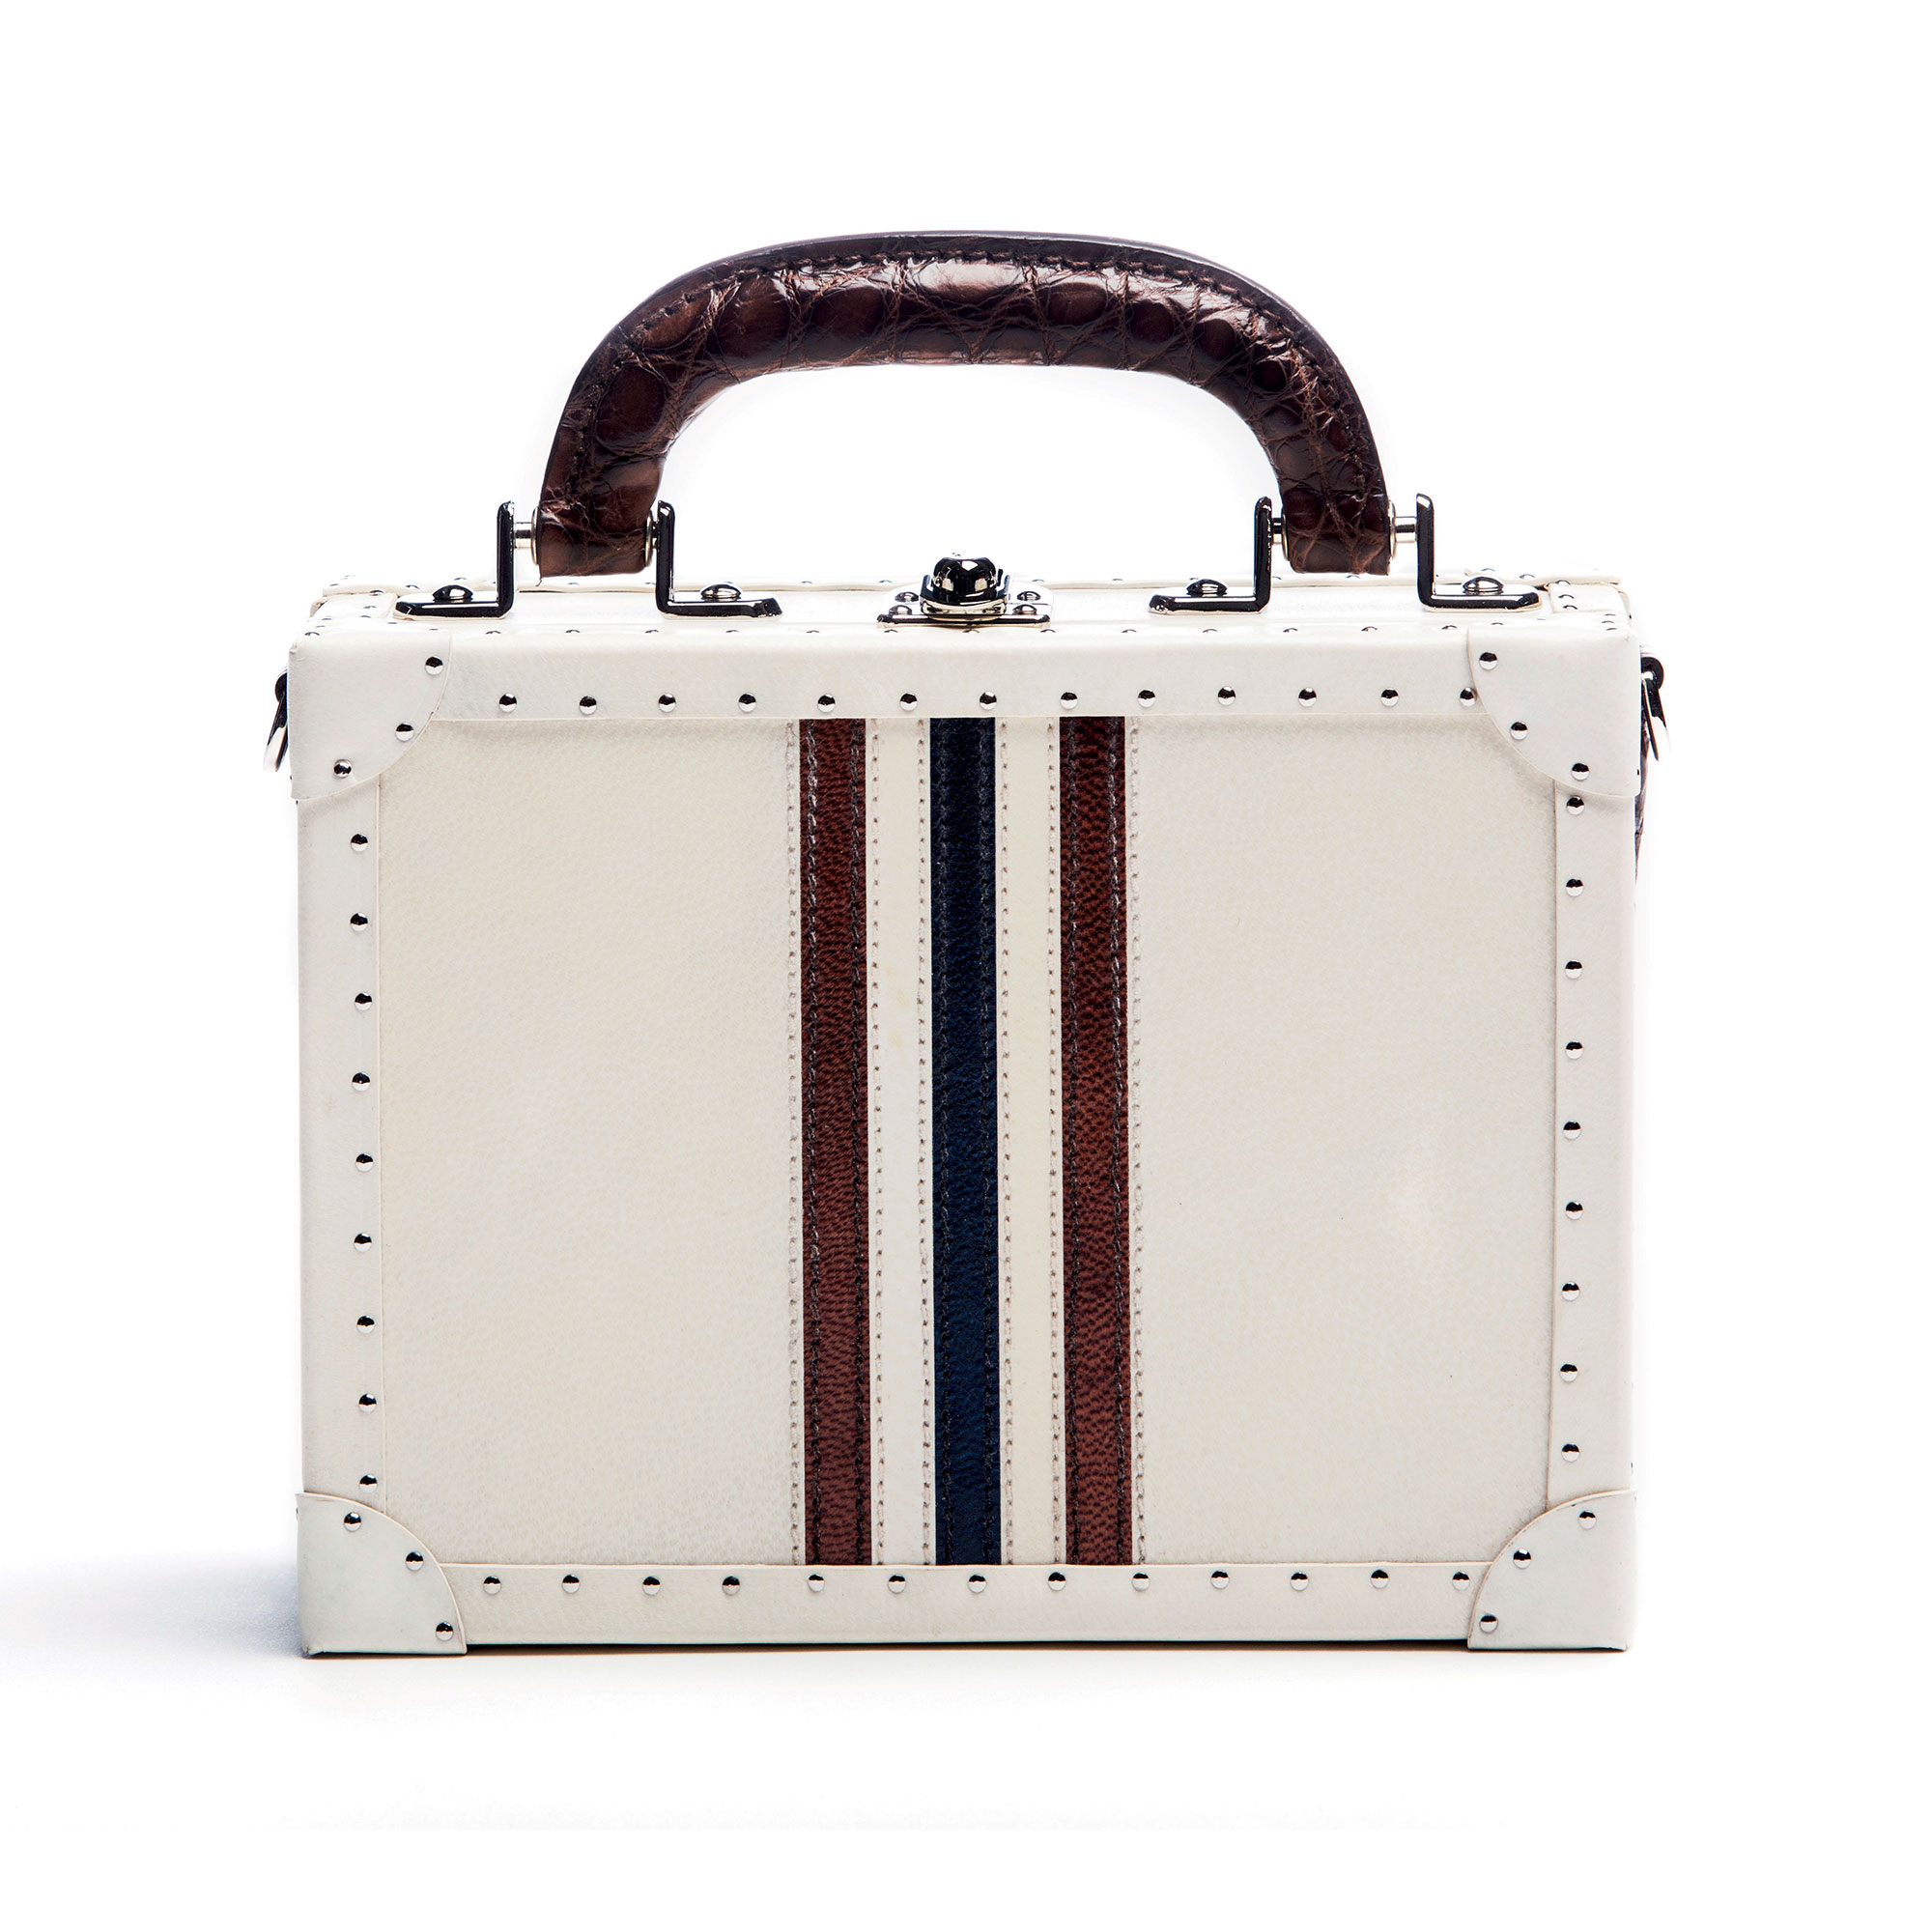 The parchment and navy, brown alligator Mini Squared Bertoncina bag by Bertoni 1949 01